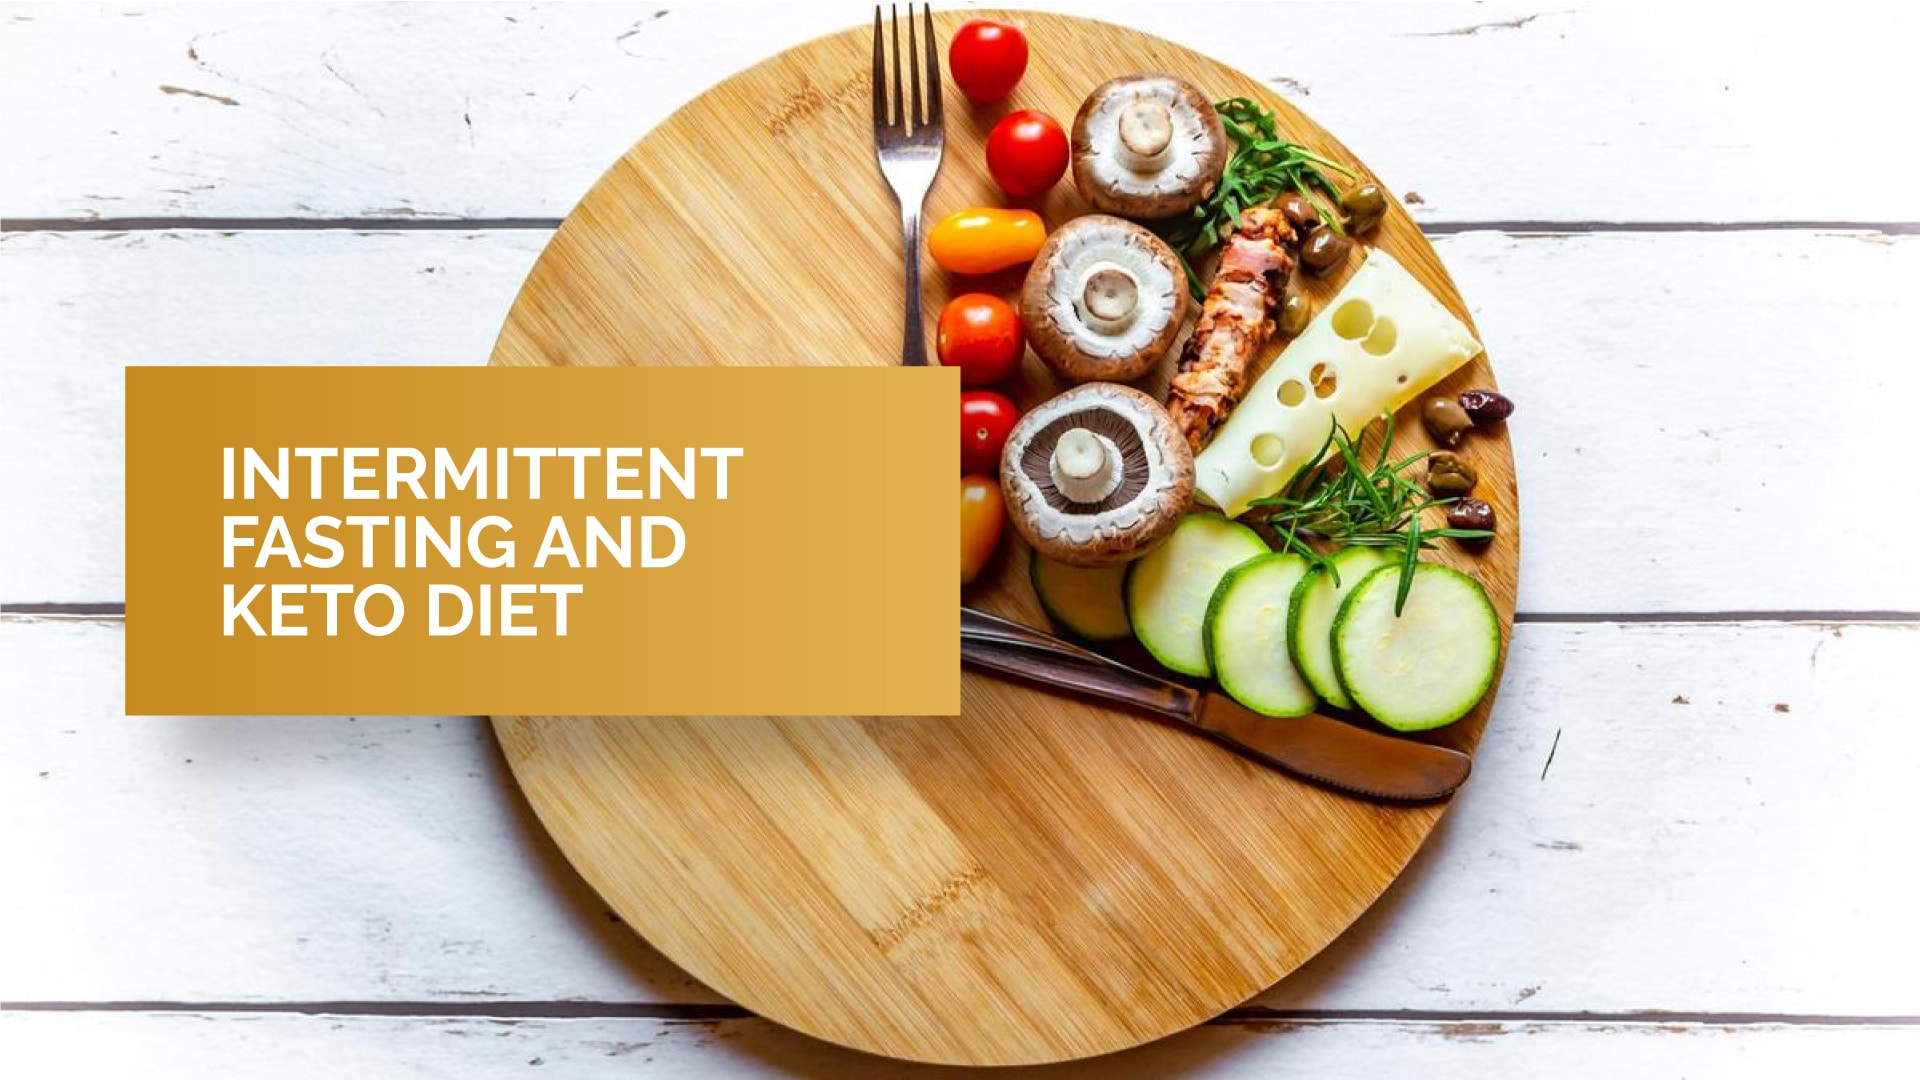 Keto Diet and Intermittent Fasting – A combination that works!